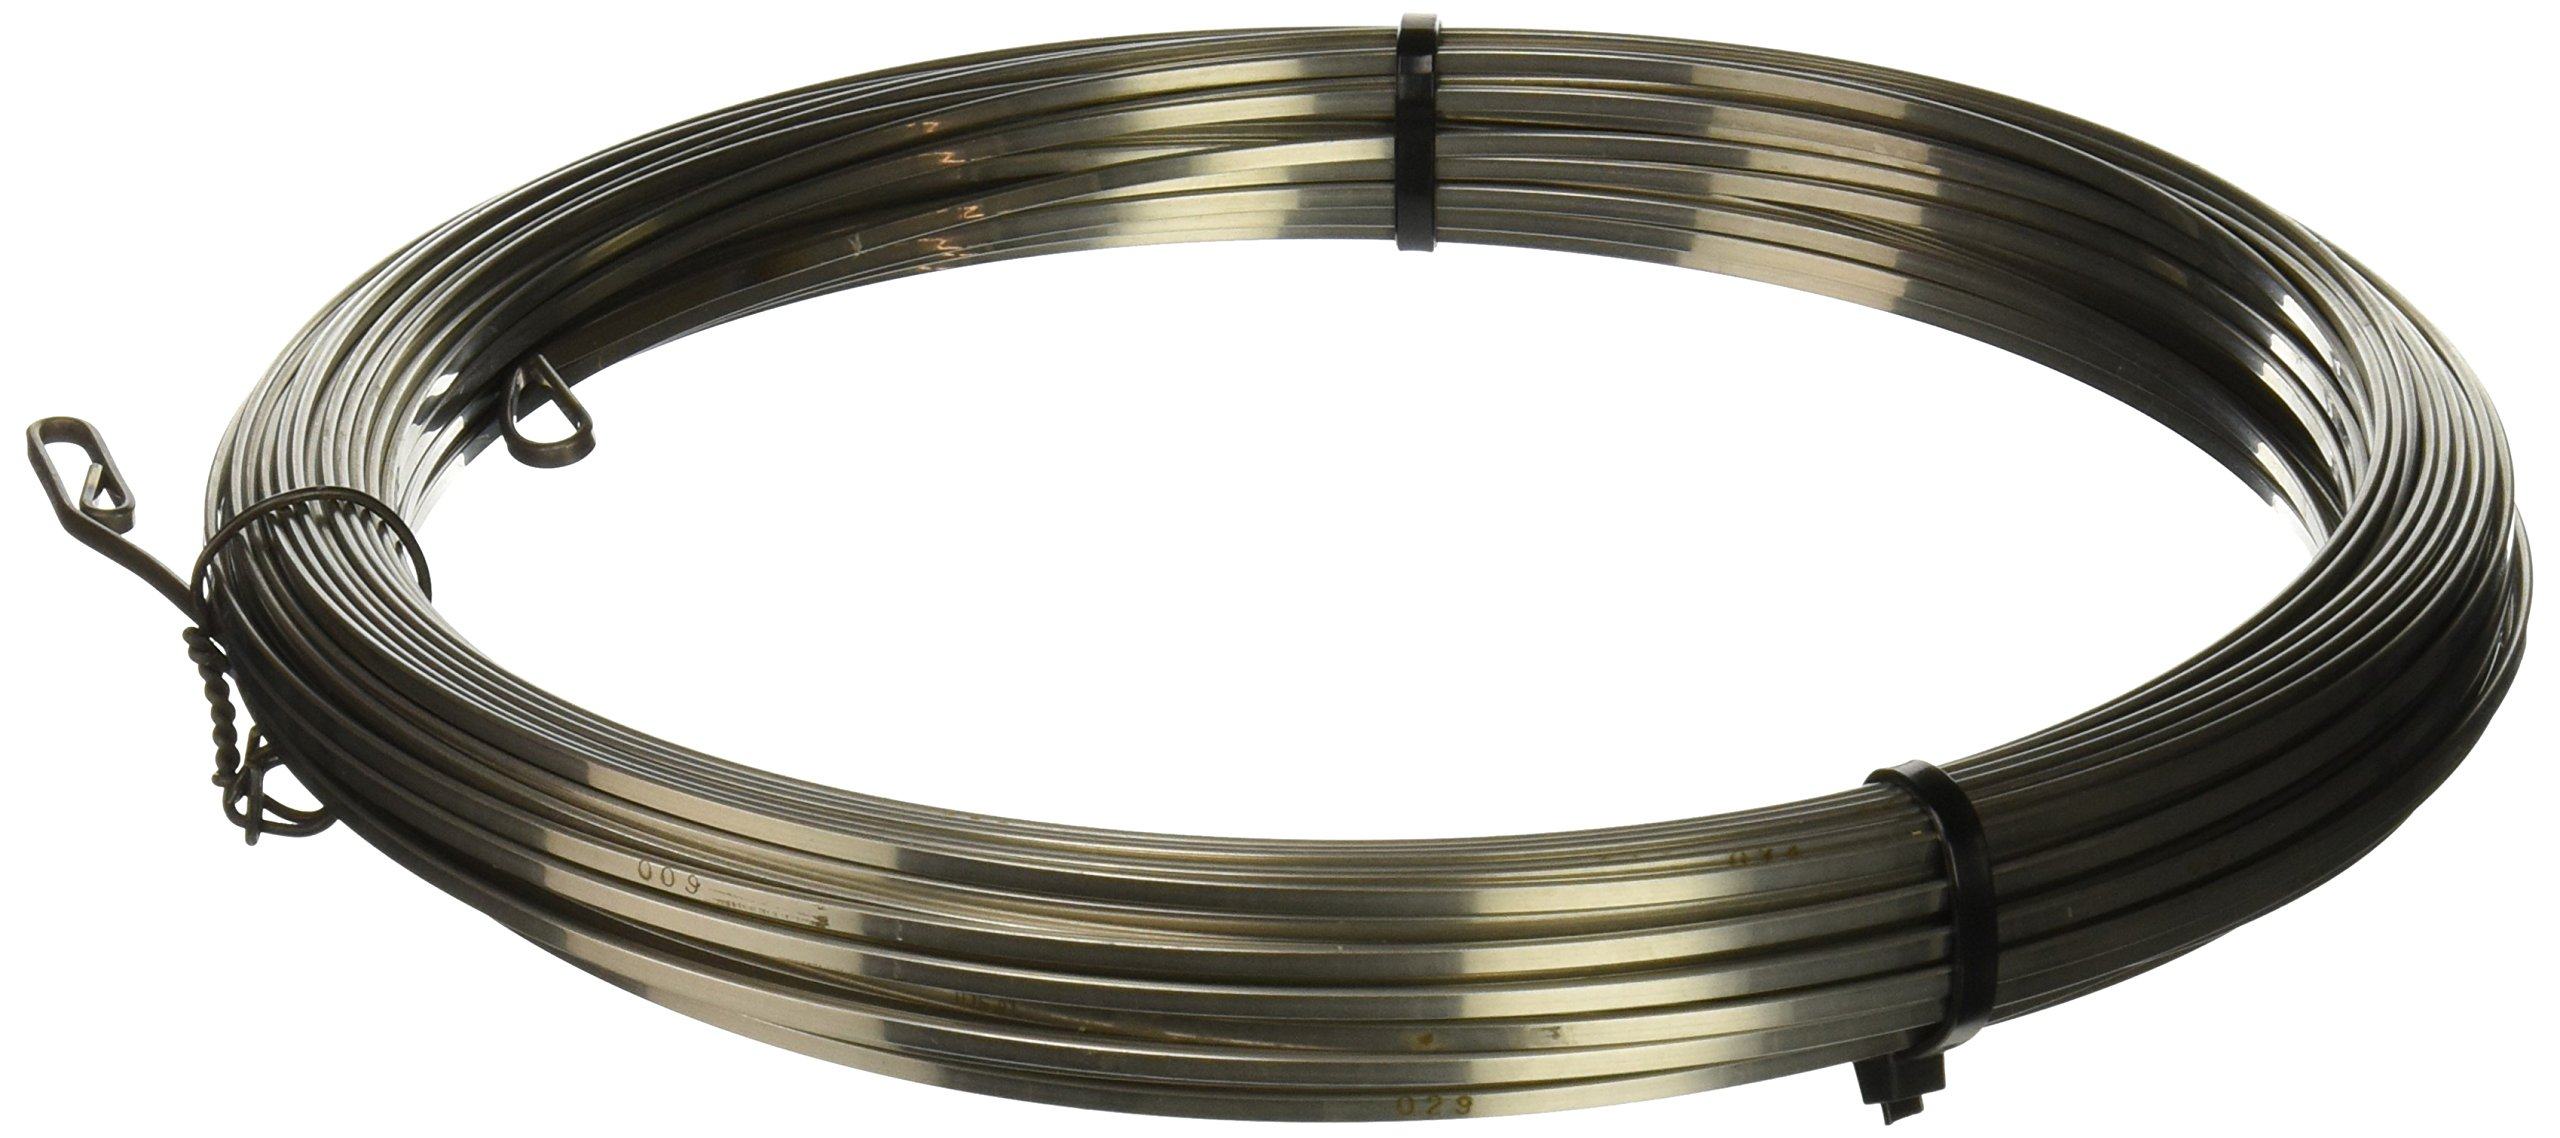 Ideal 31-073 Fish Tapes, 120' Length, Stainless Steel